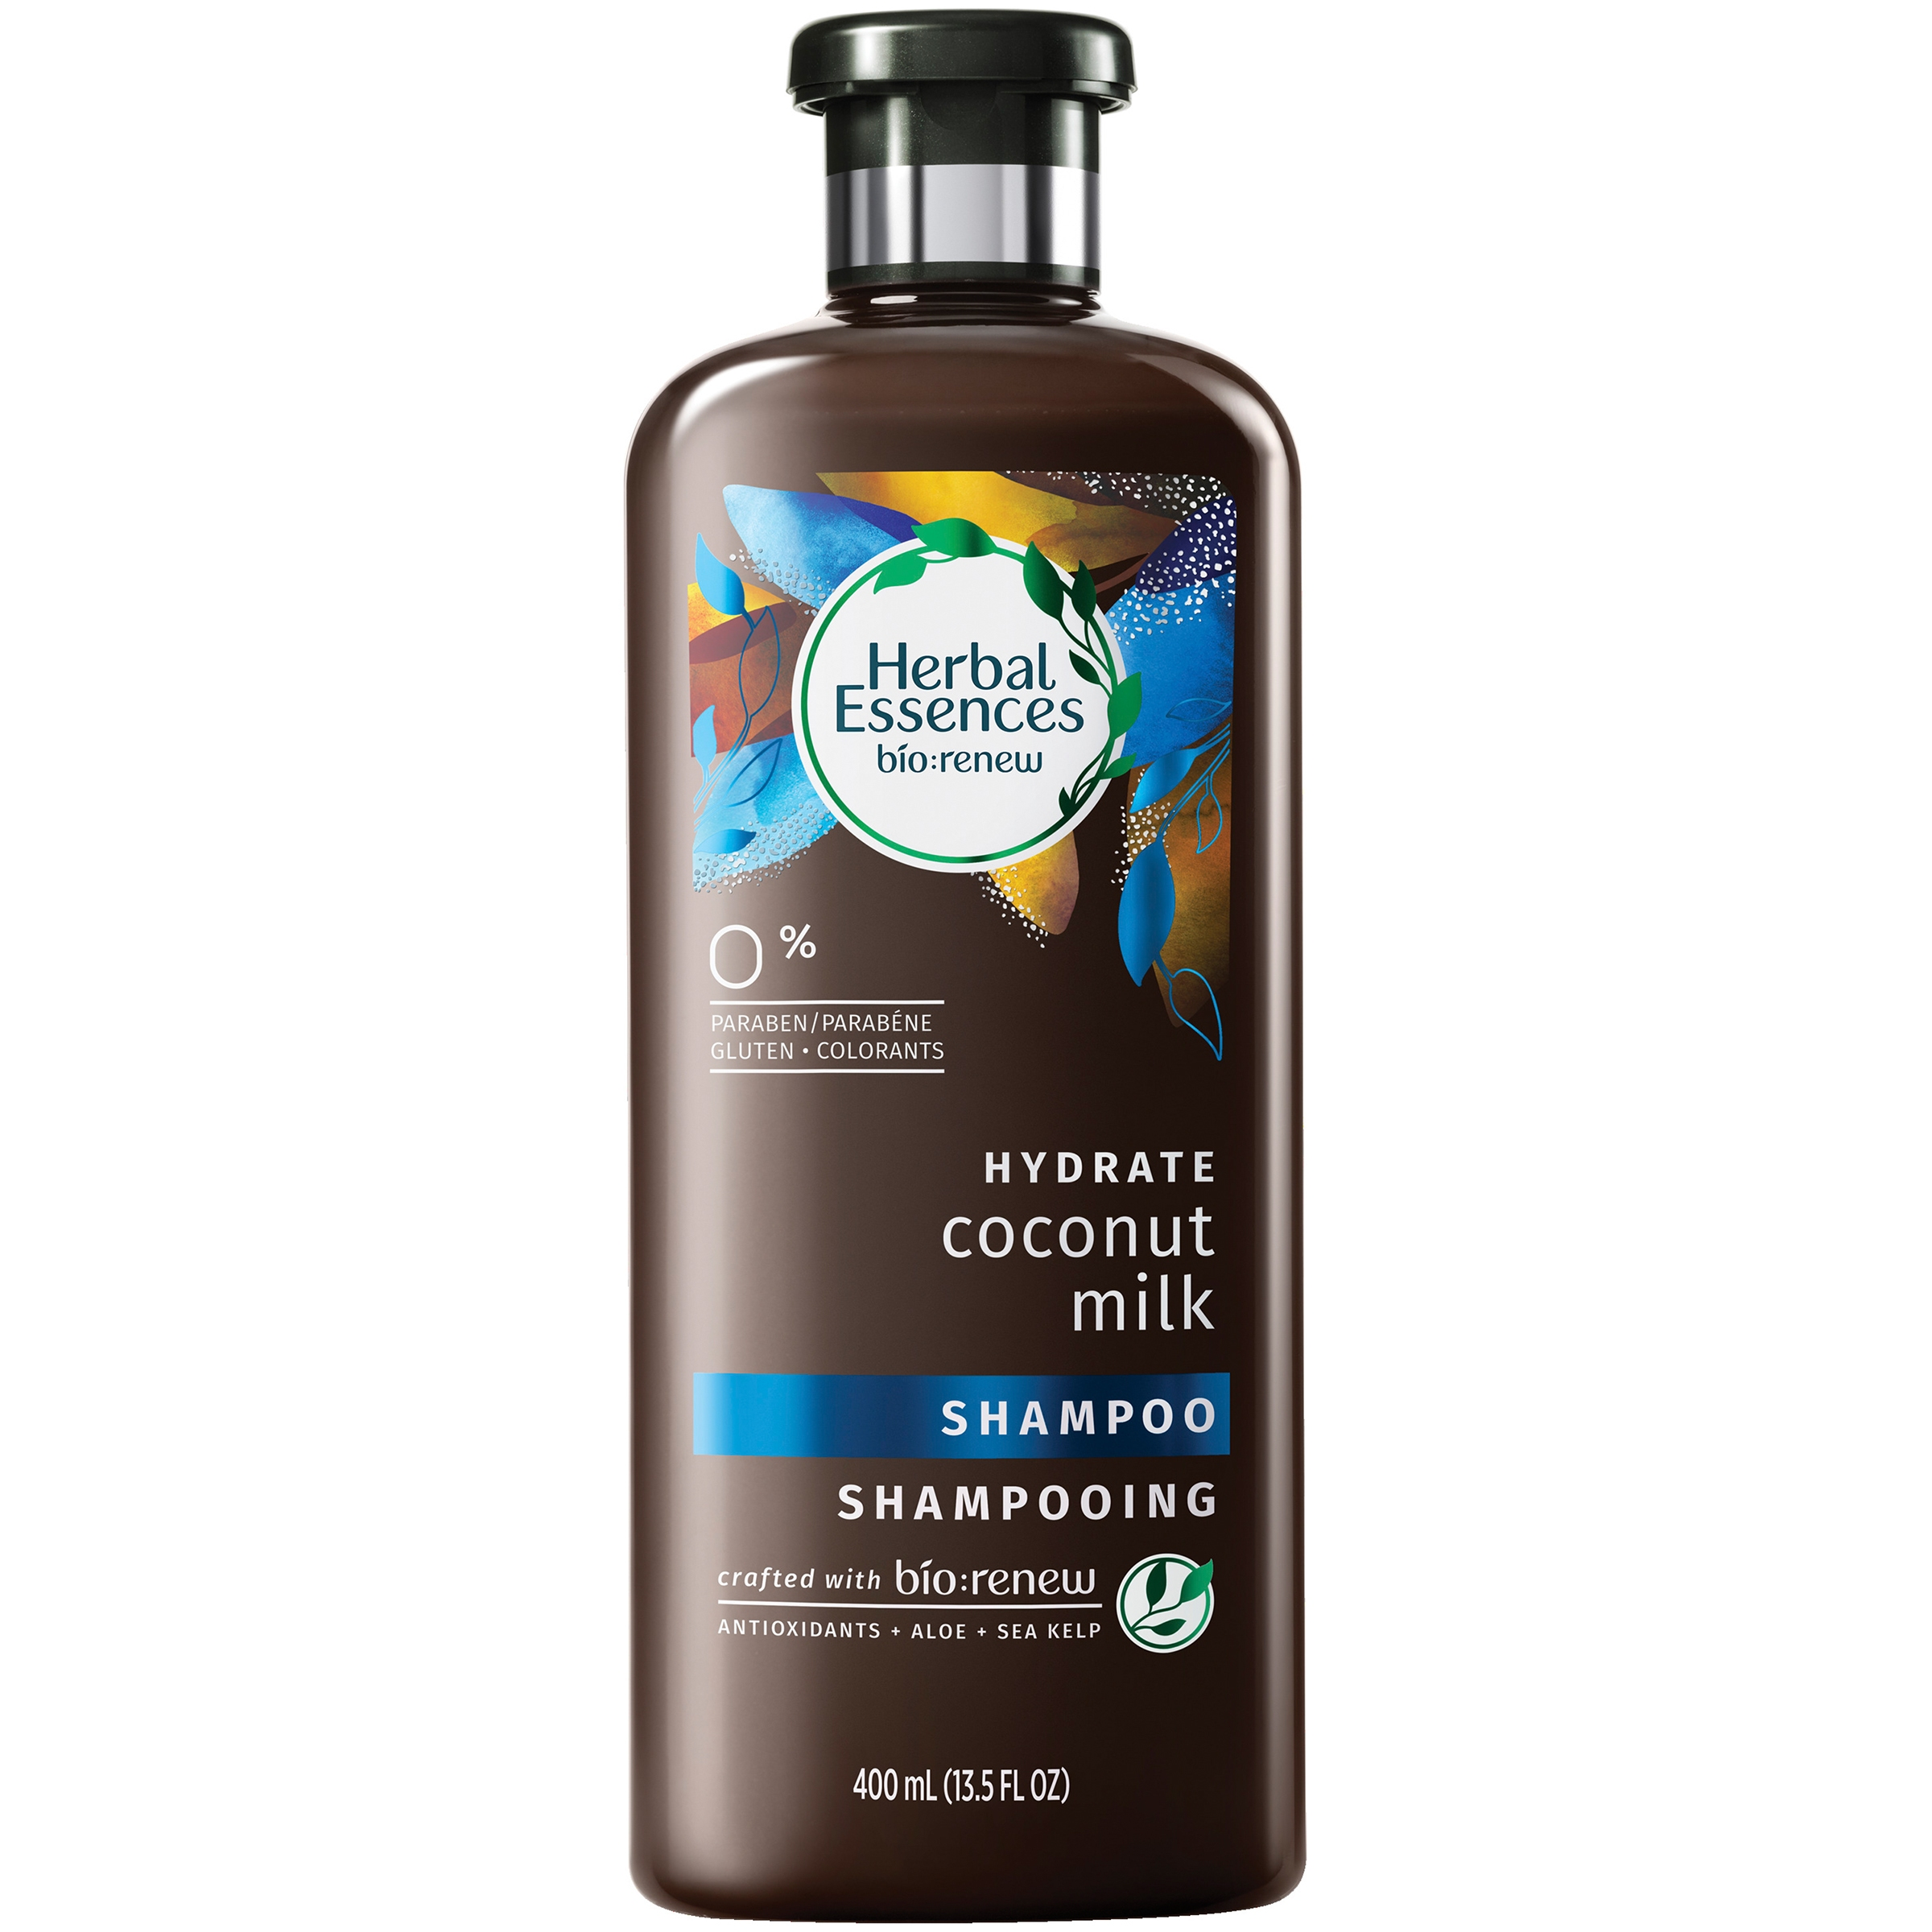 Herbal Essences Bio:Renew Hydrate Coconut Milk Shampoo 13.5 fl. oz. Plastic Bottle